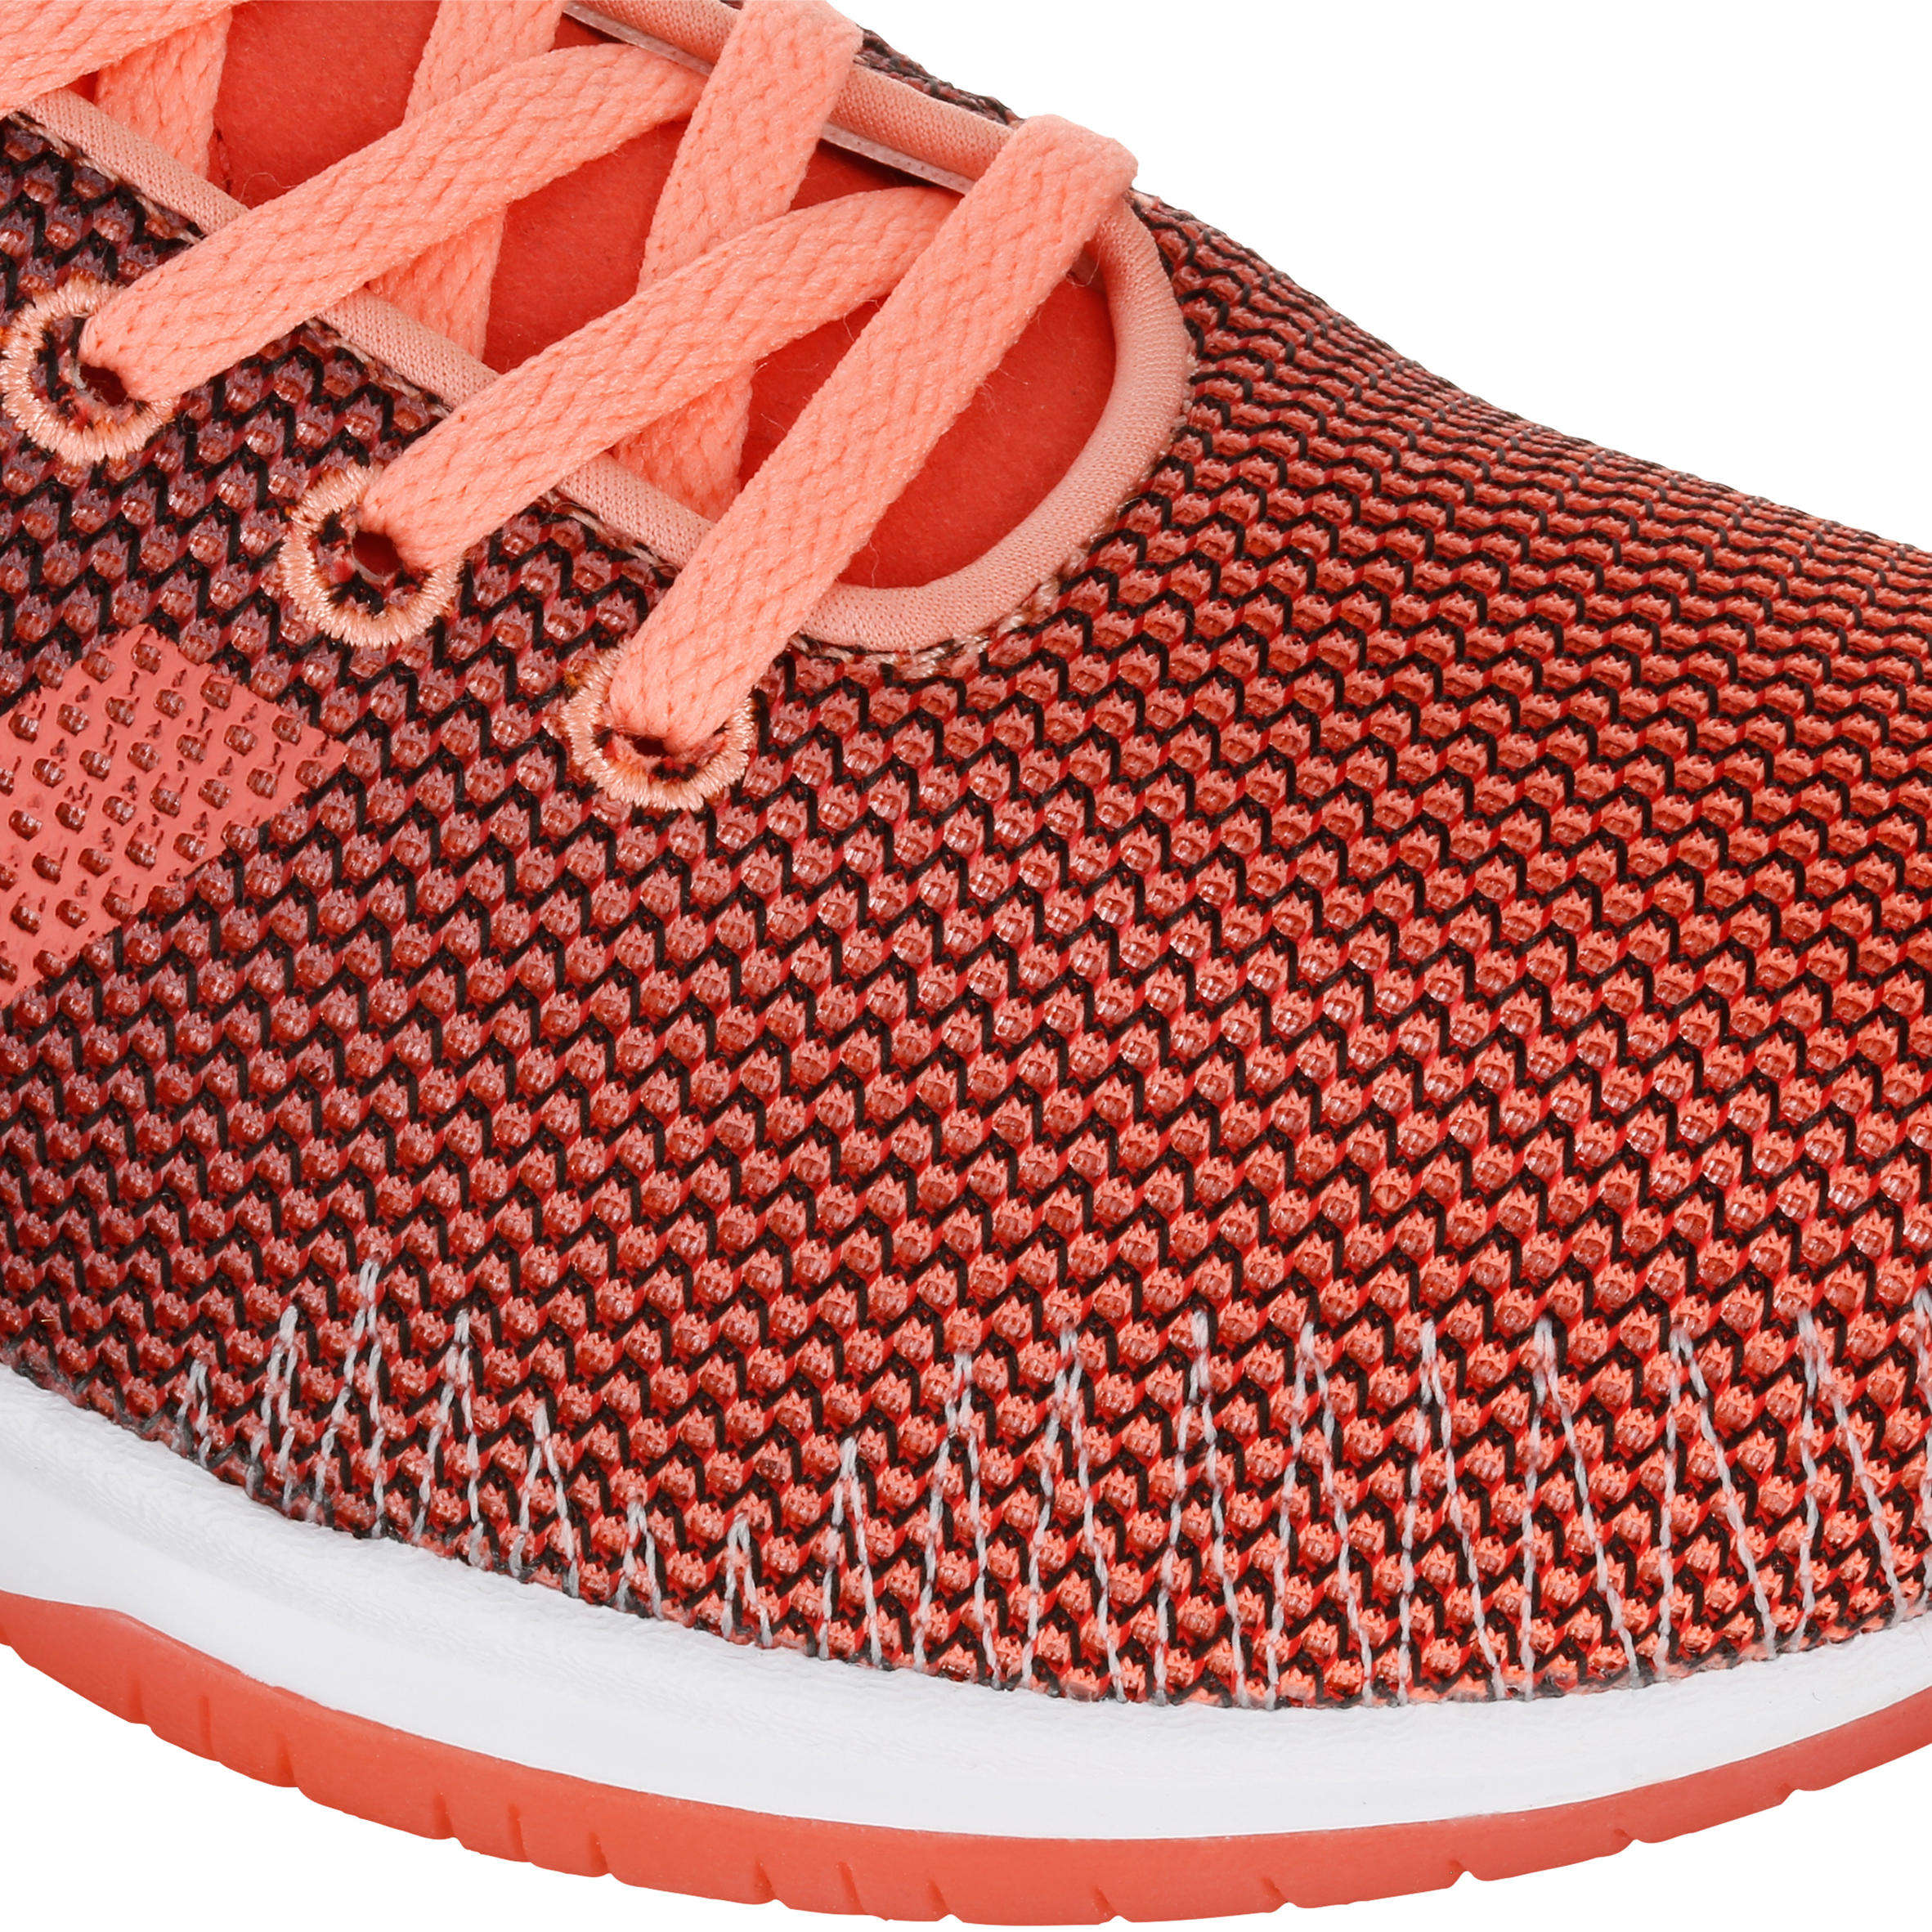 Cf Femme Chaussures Sportive Orange Superflex Marche QoCtBsrhdx